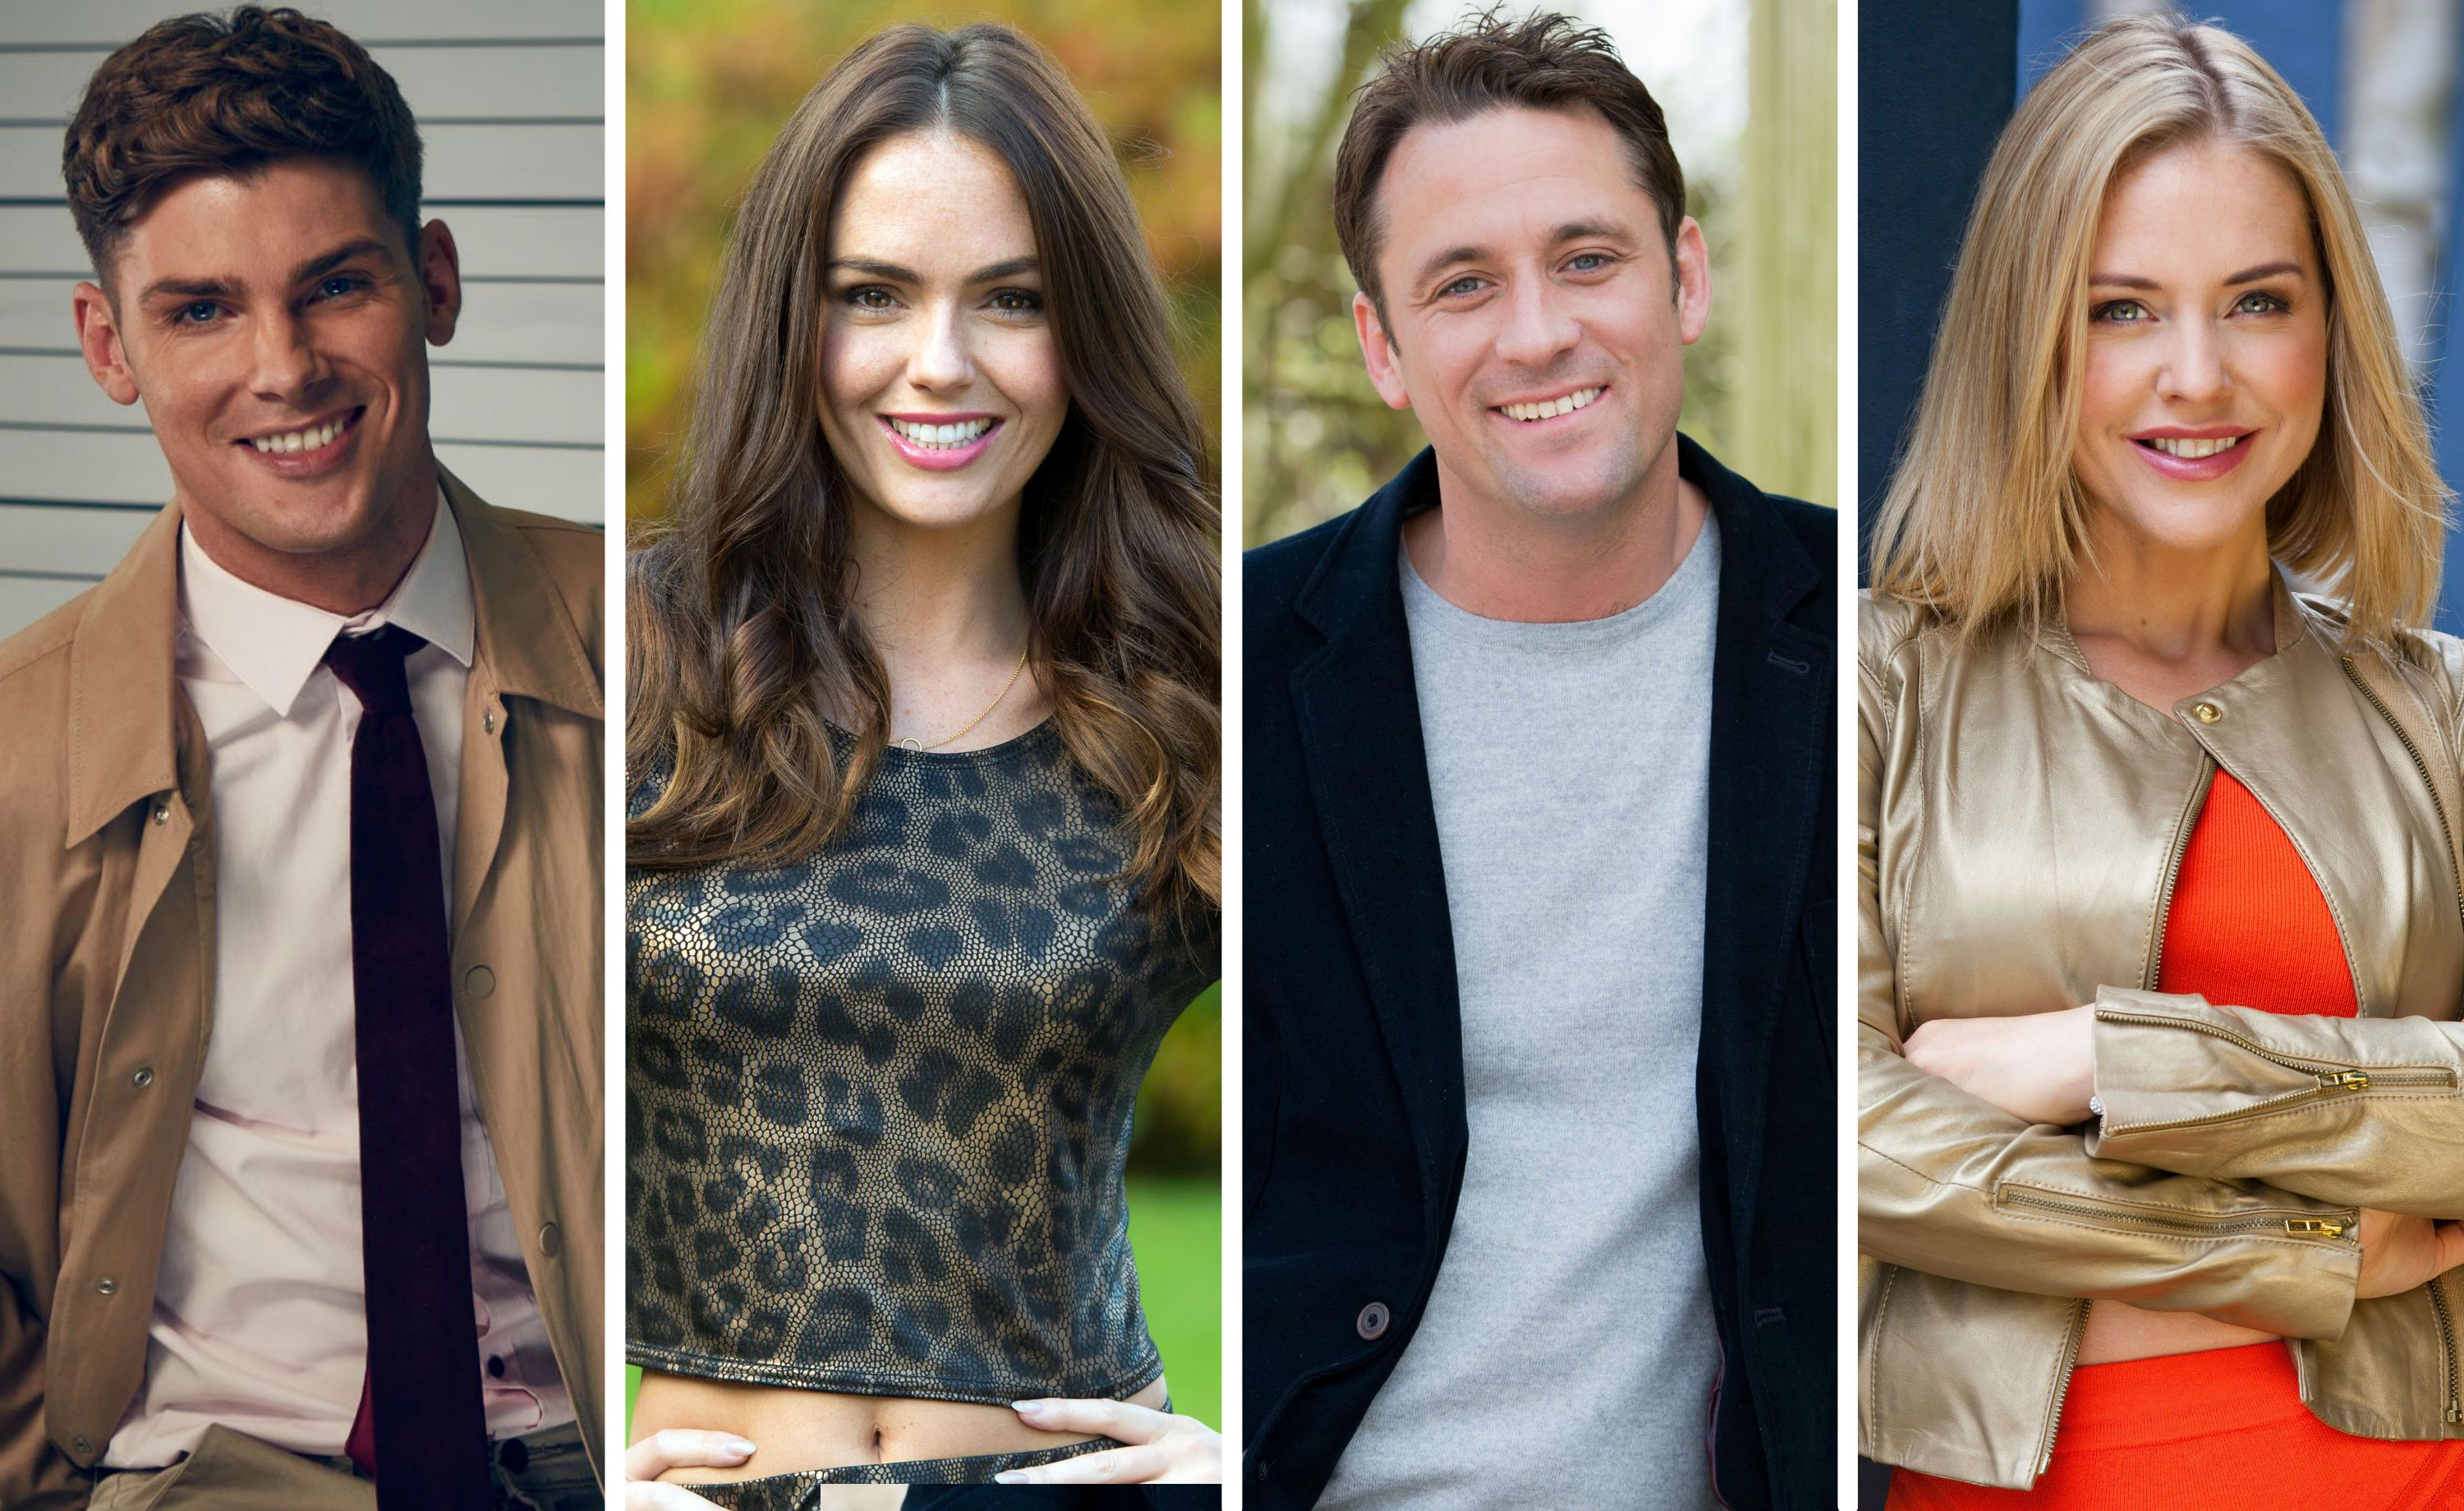 Whos dating who hollyoaks cast